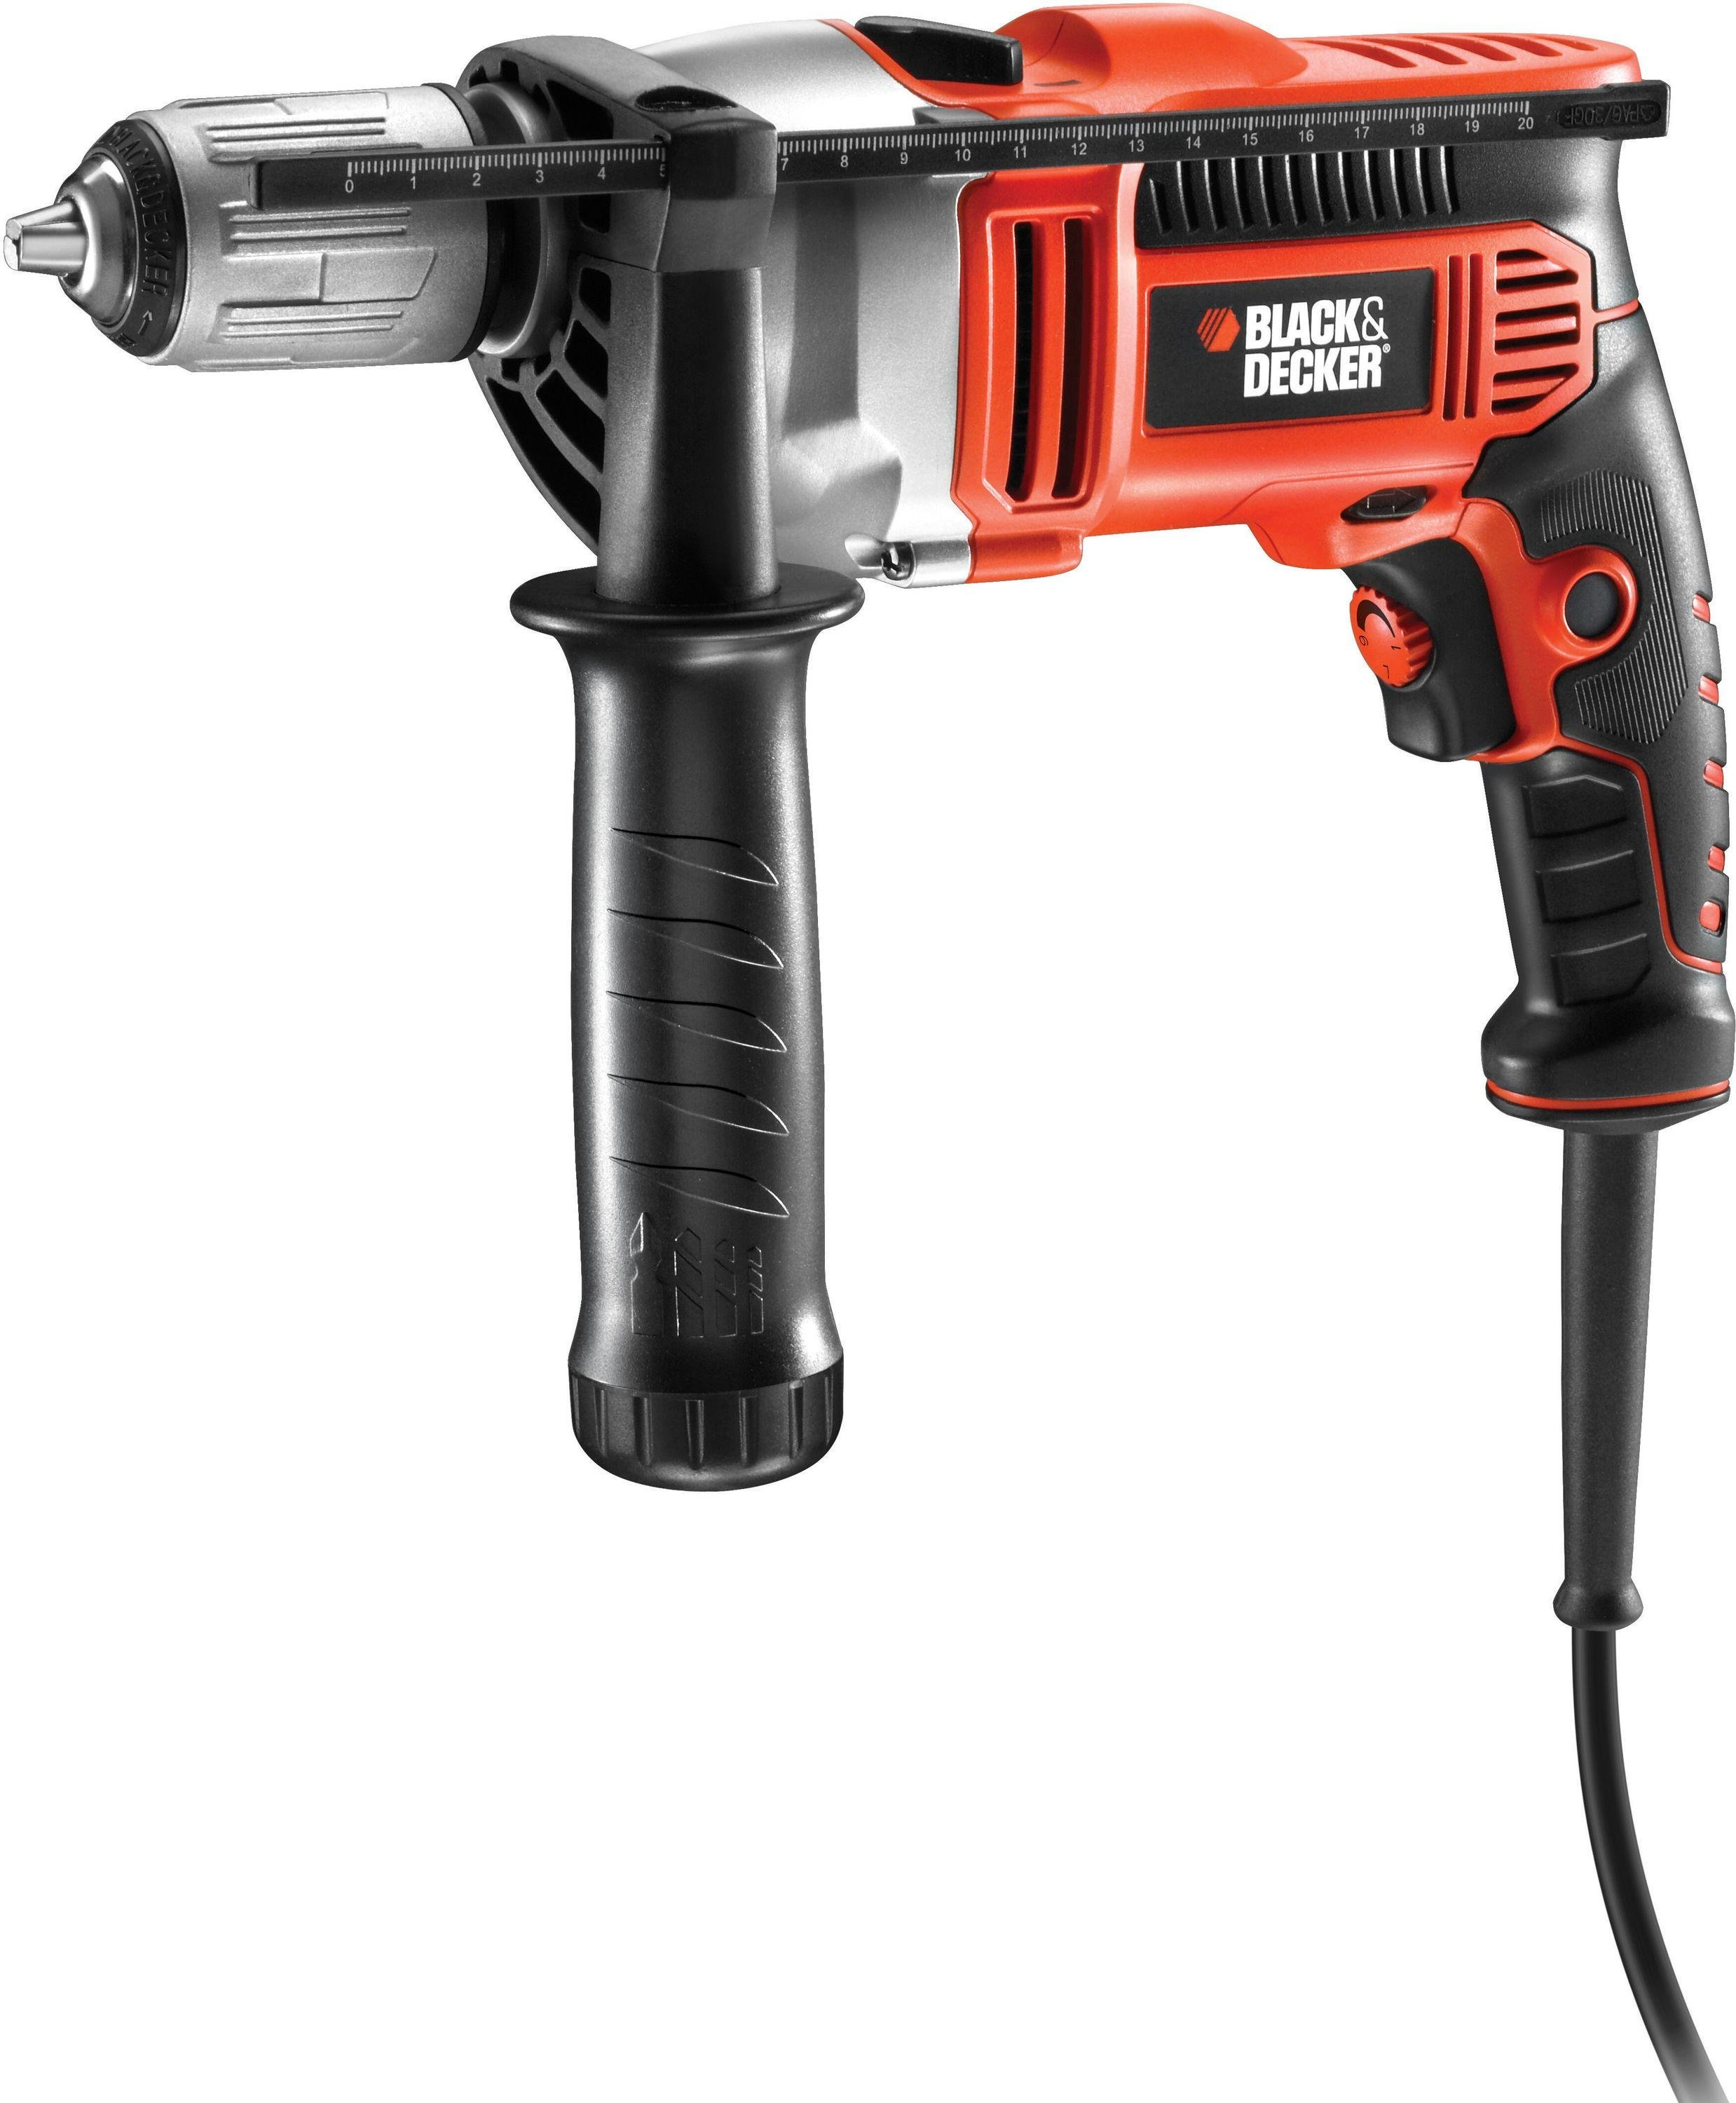 black and decker 800w hammer drill and kitbox review. Black Bedroom Furniture Sets. Home Design Ideas